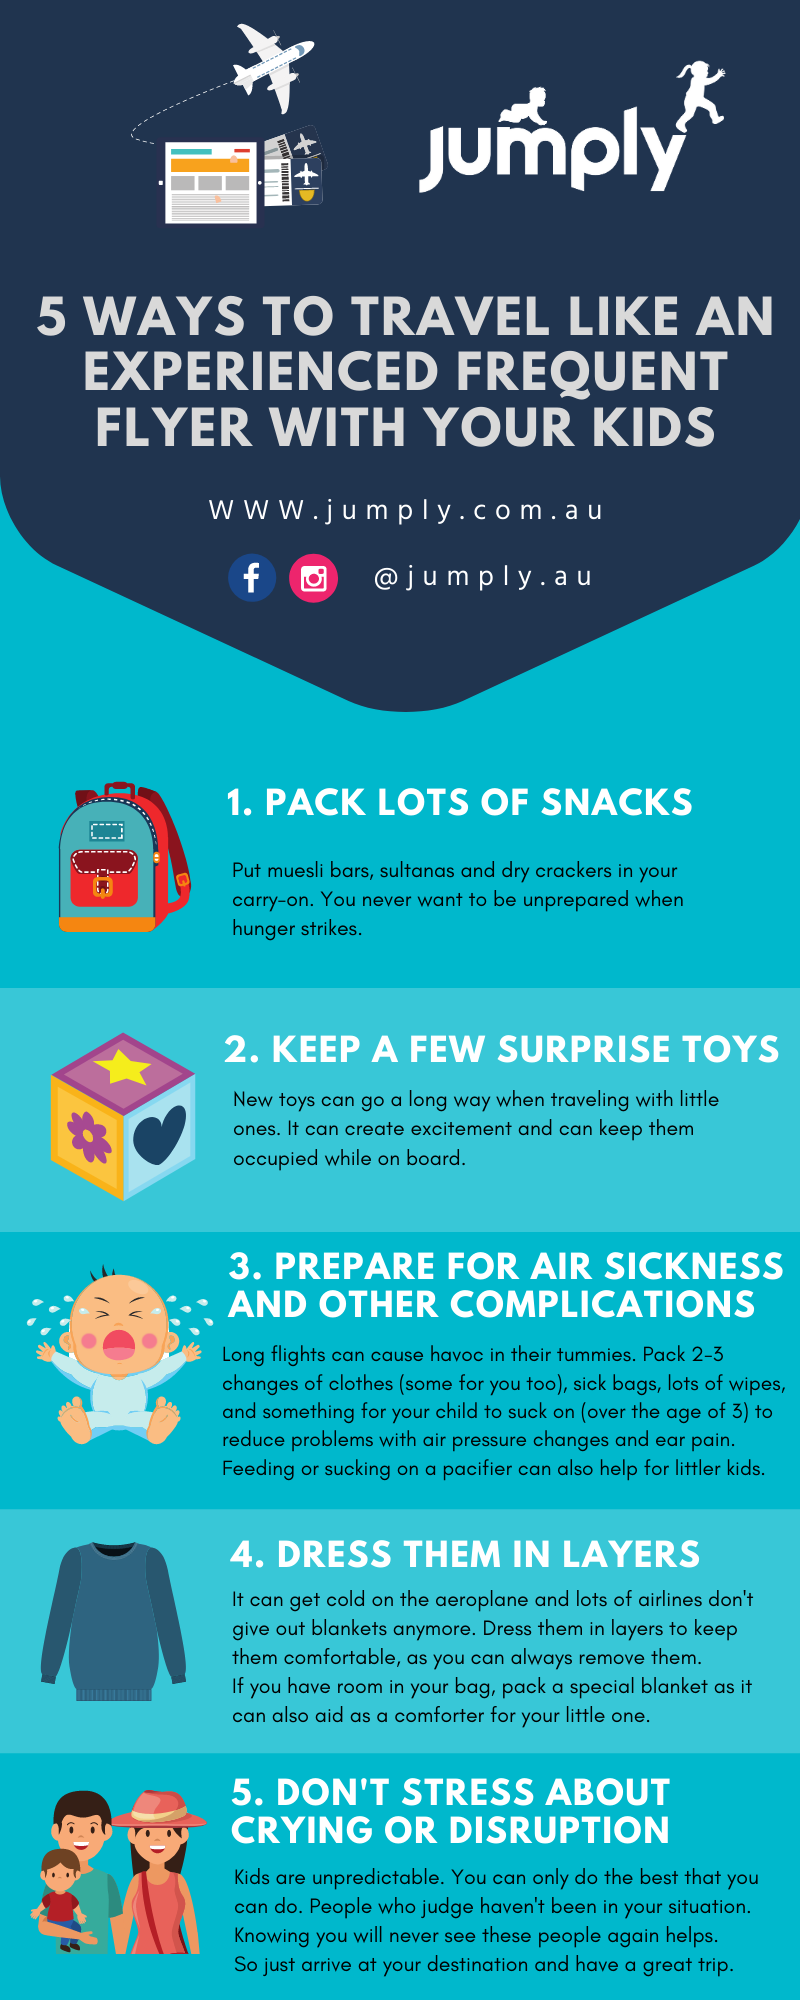 Travel like an experienced frequent flyer with kids